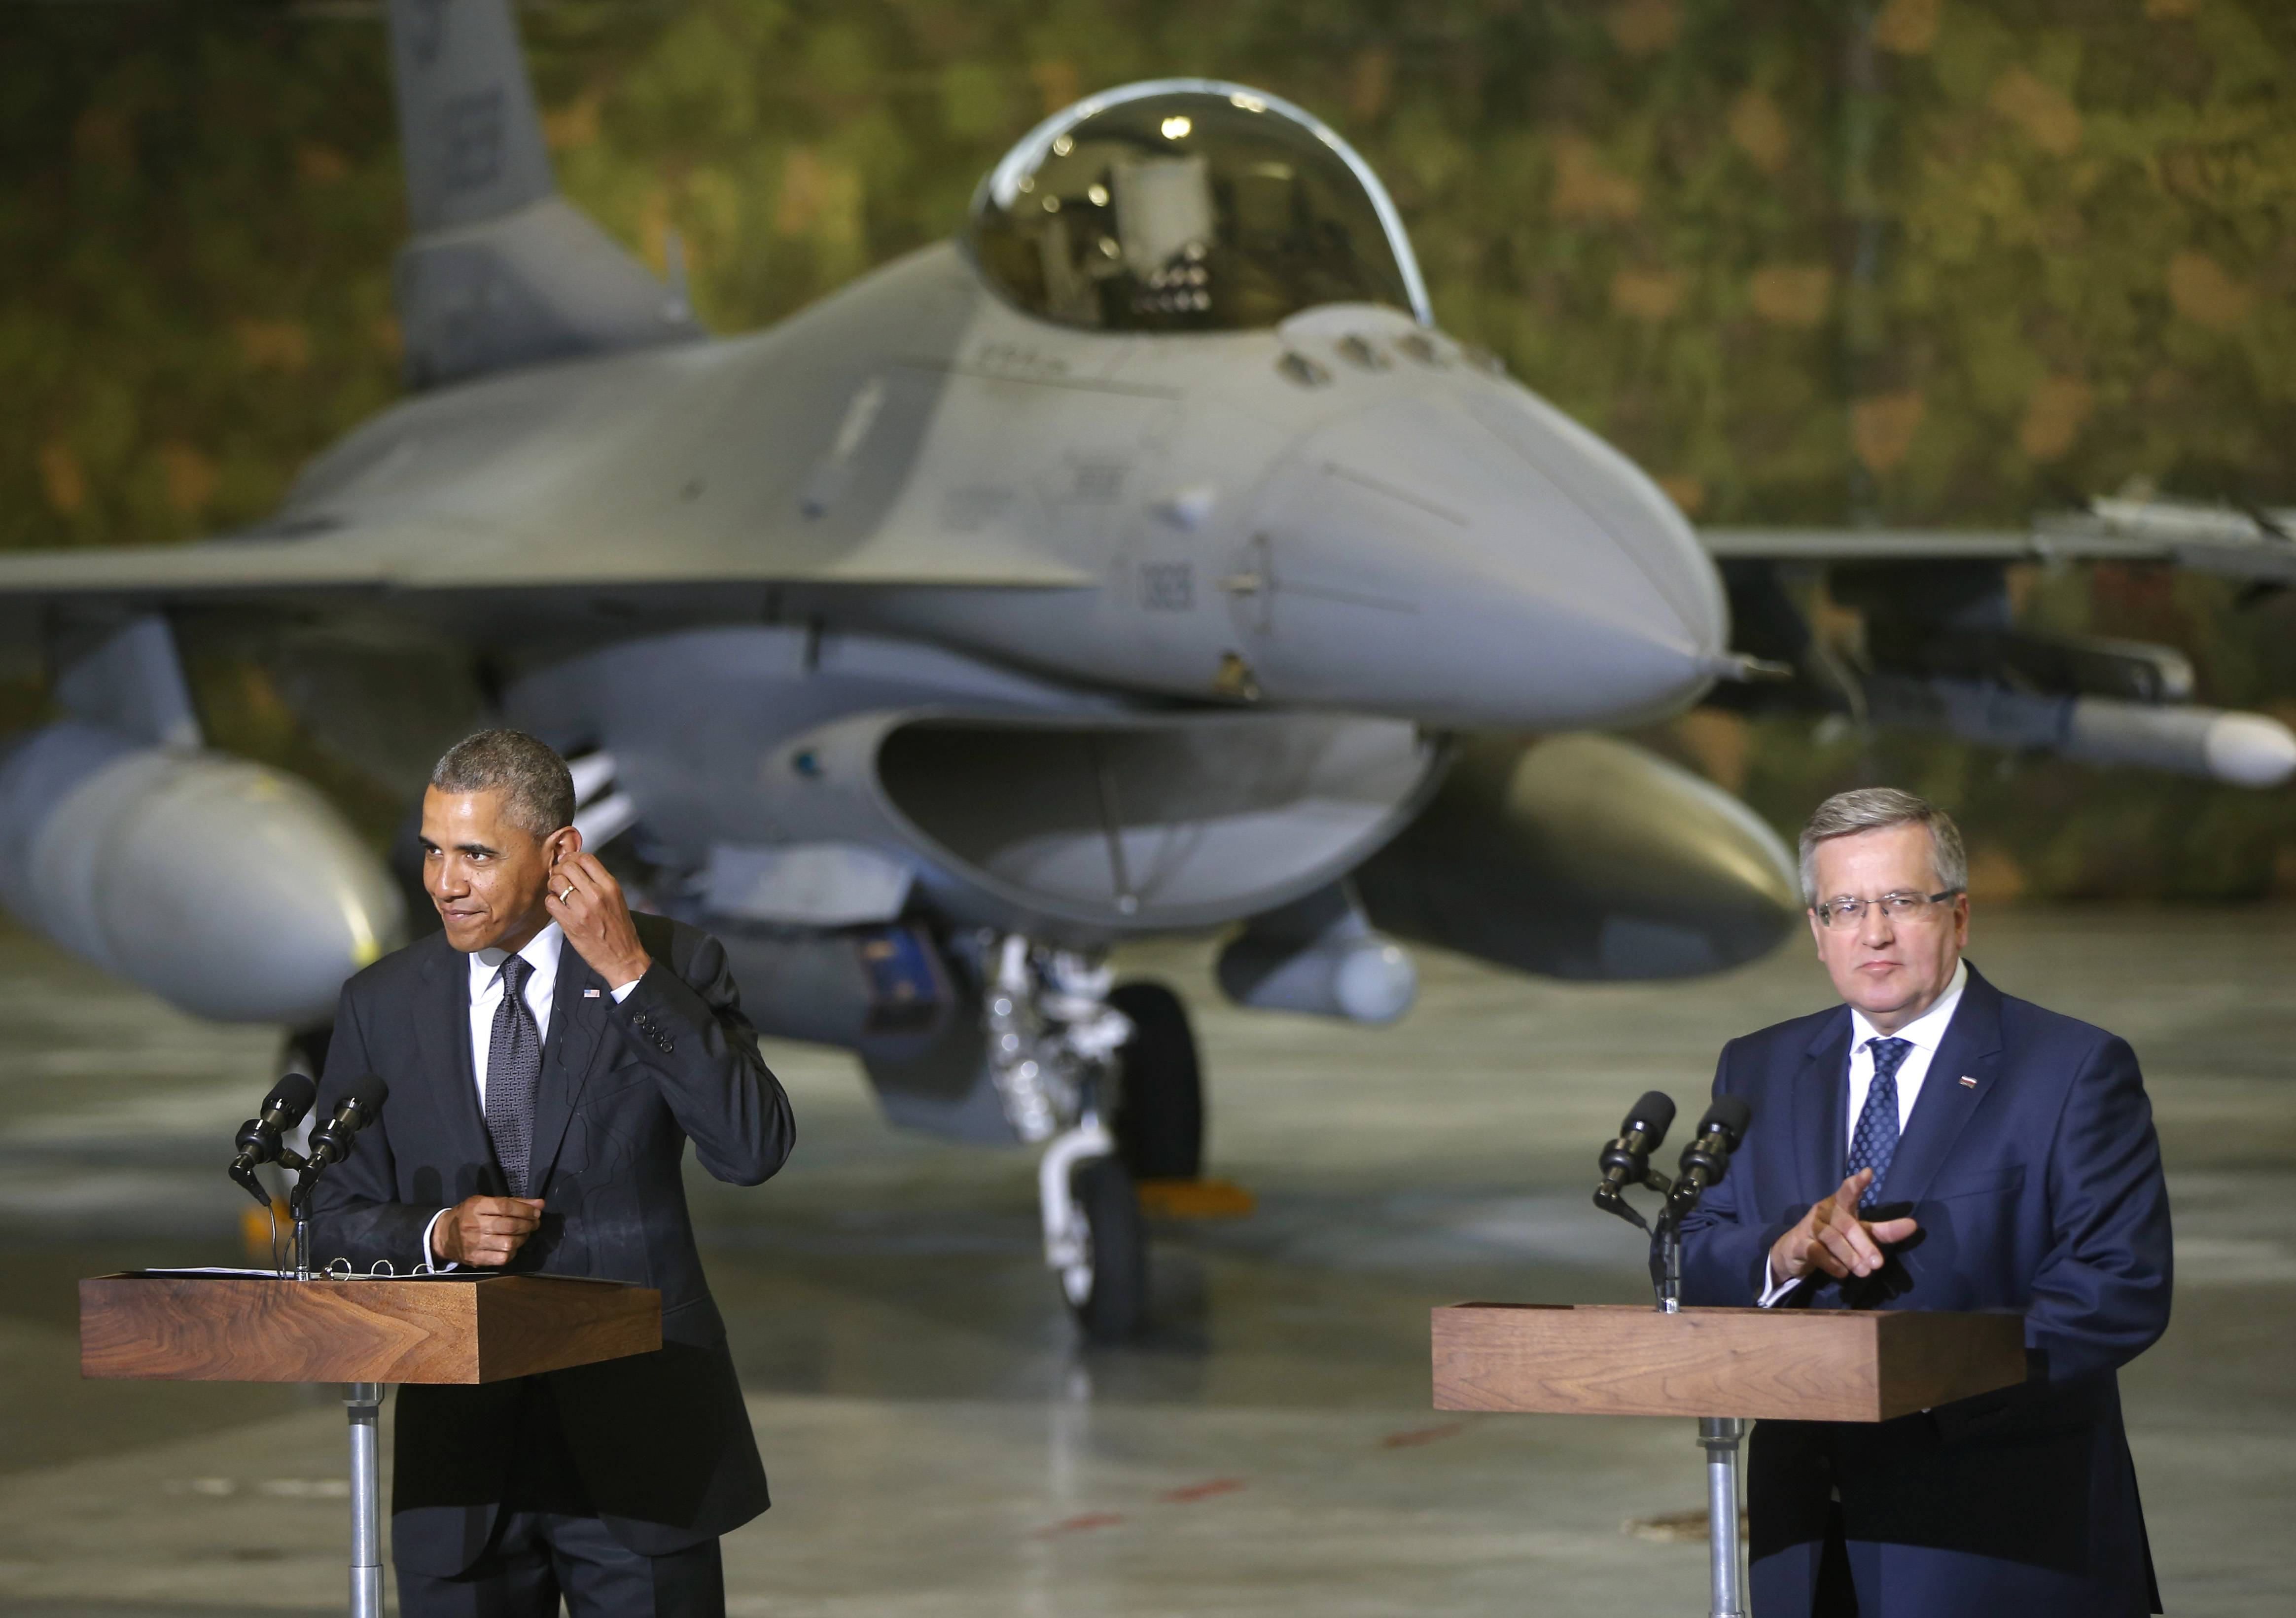 President Barack Obama and Poland's President Bronislaw Komorowski make statements and meet with U.S. and Polish troops at an event featuring four F-16 fighter jets, two American and two Polish, as part of multinational military exercises, in Warsaw on Tuesday.